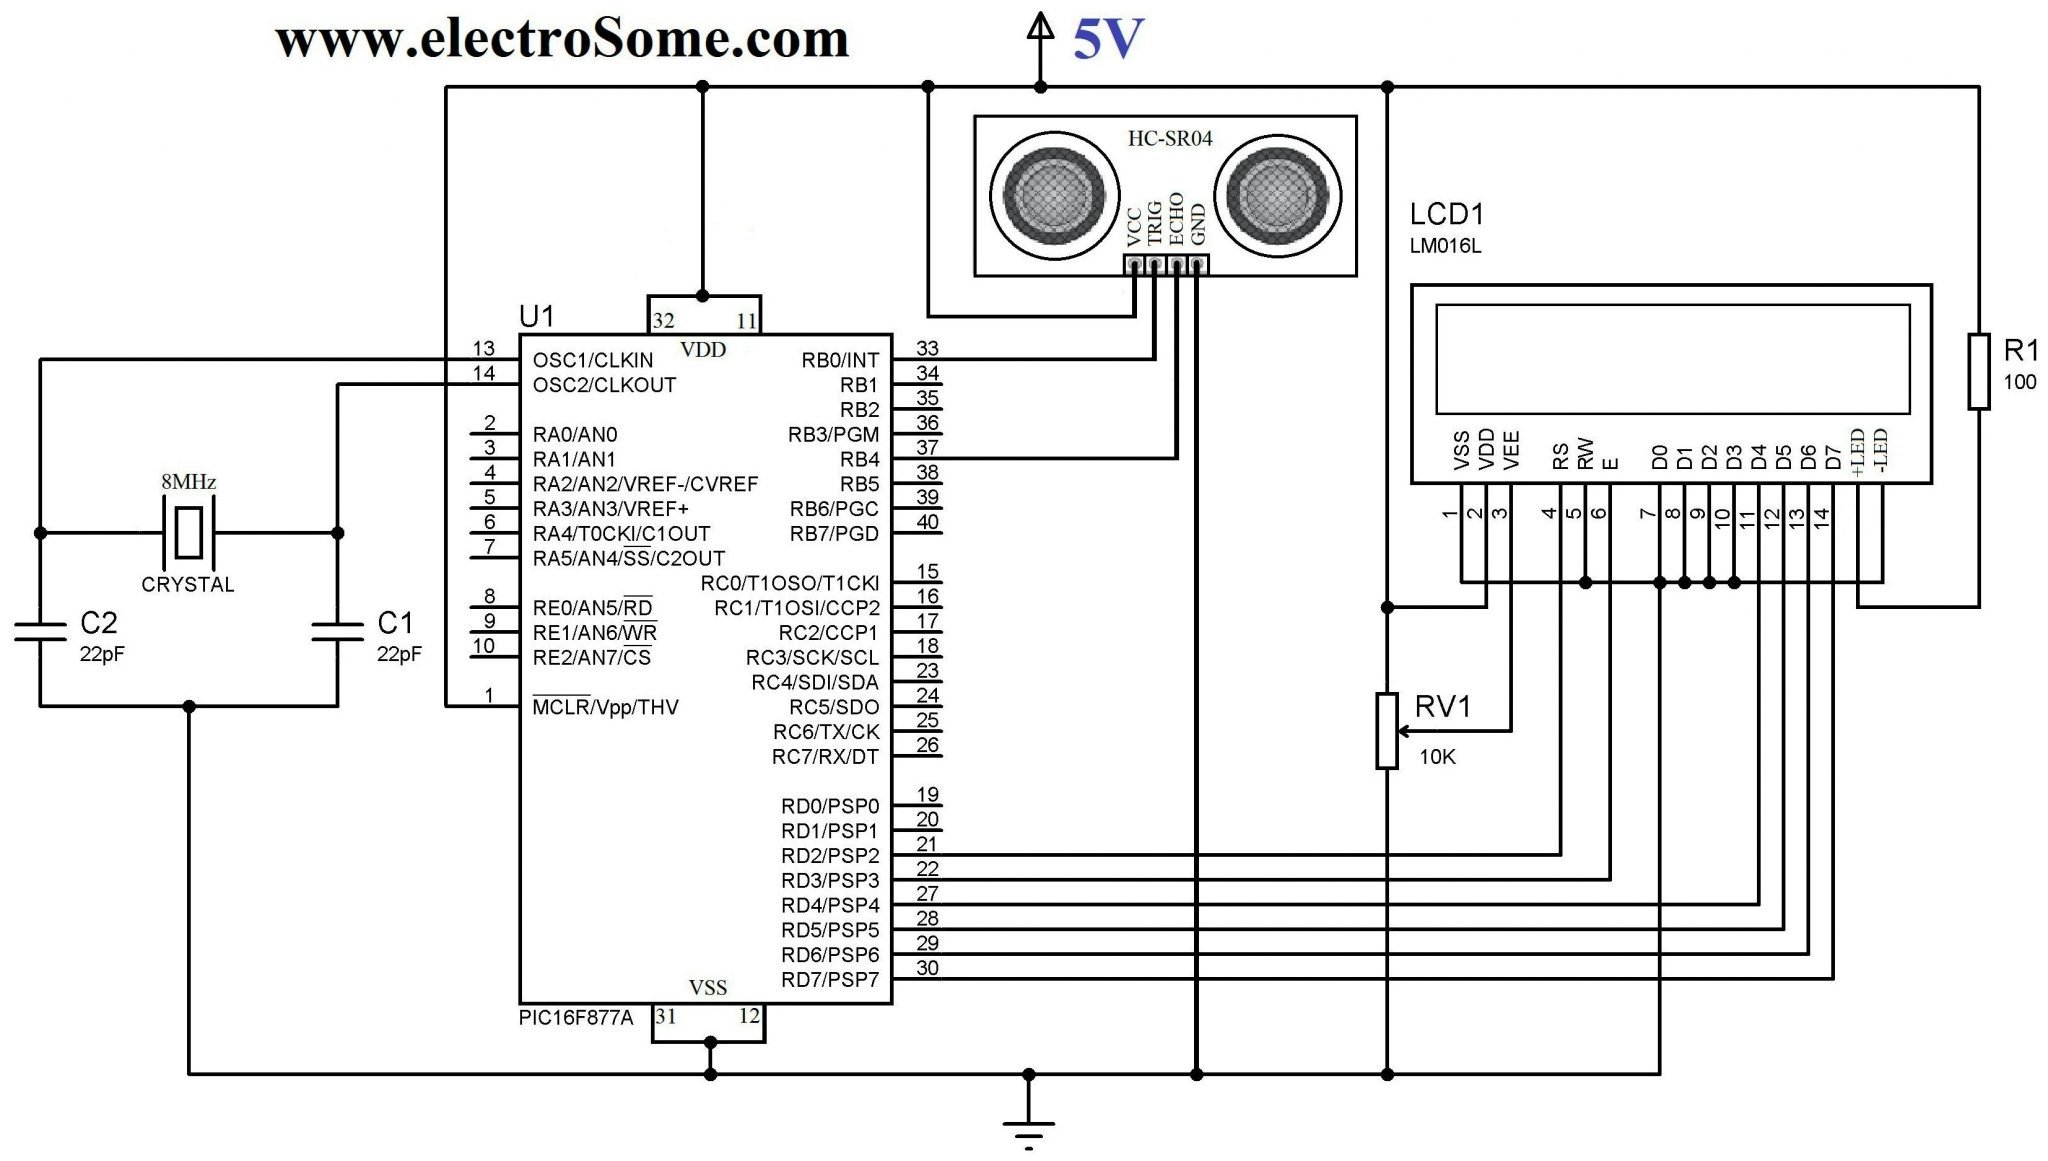 interfacing hc sr04 ultrasonic sensor with pic microcontrollercircuit diagram interfacing hc sr04 ultrasonic distance sensor with pic microcontroller